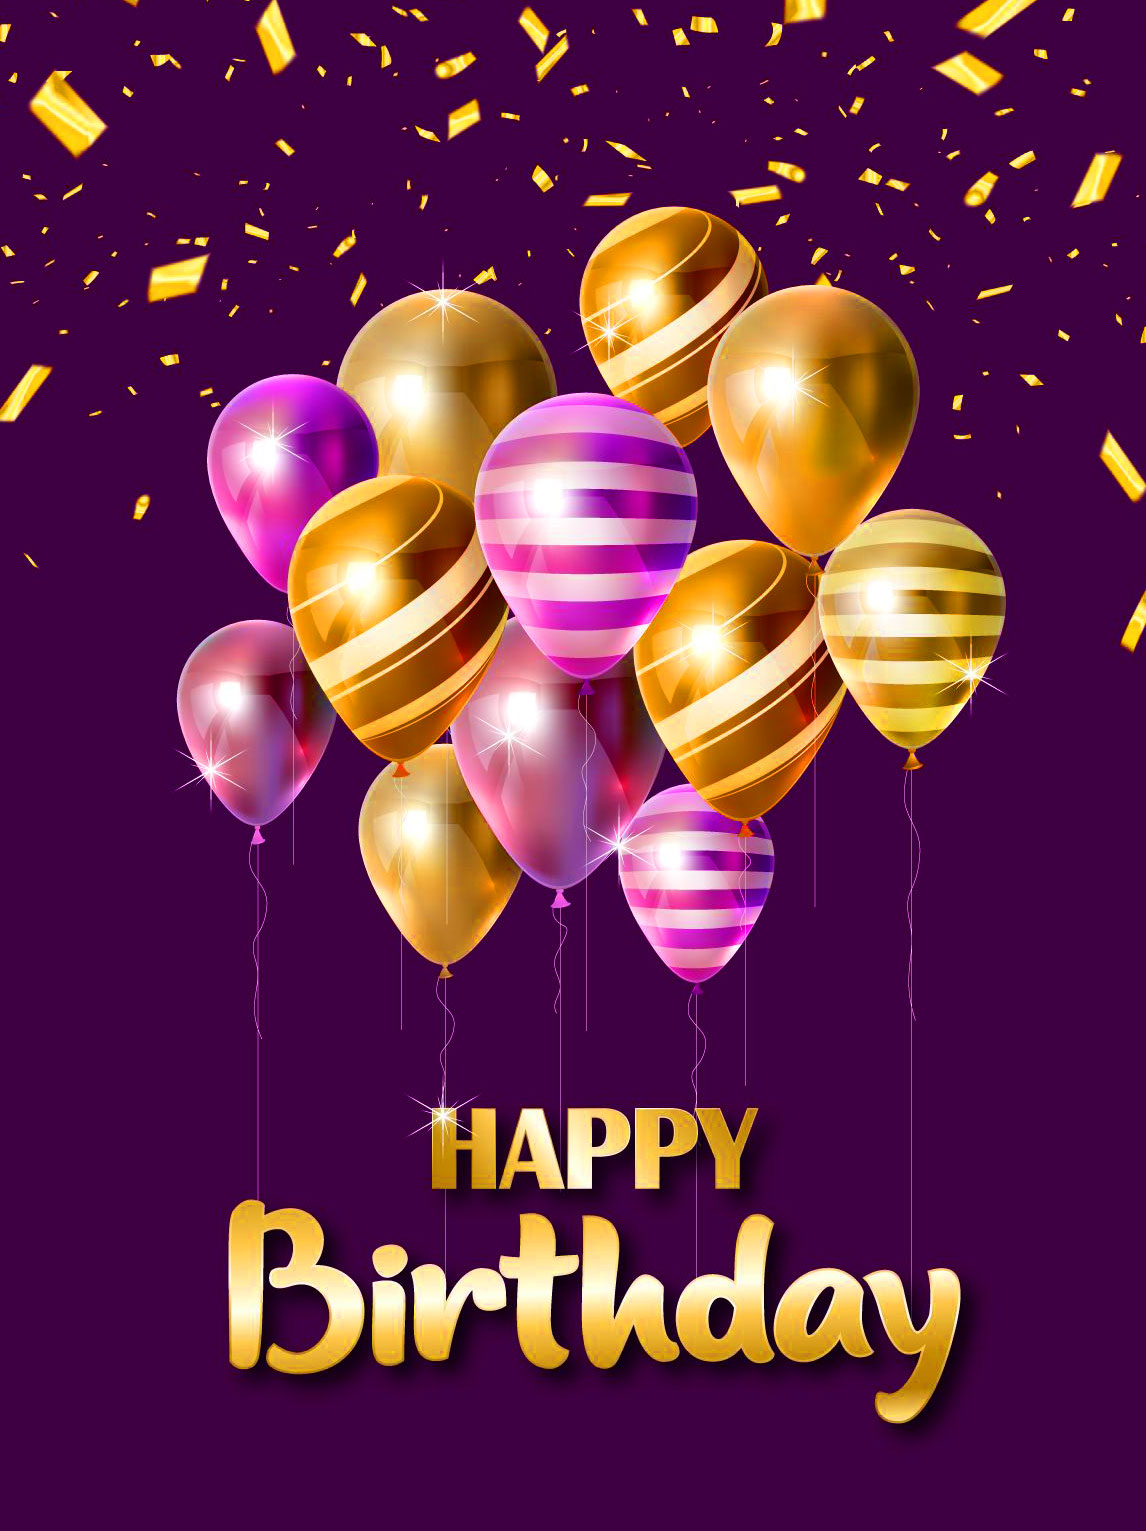 Free Latest Happy Birthday Wallpaper Download